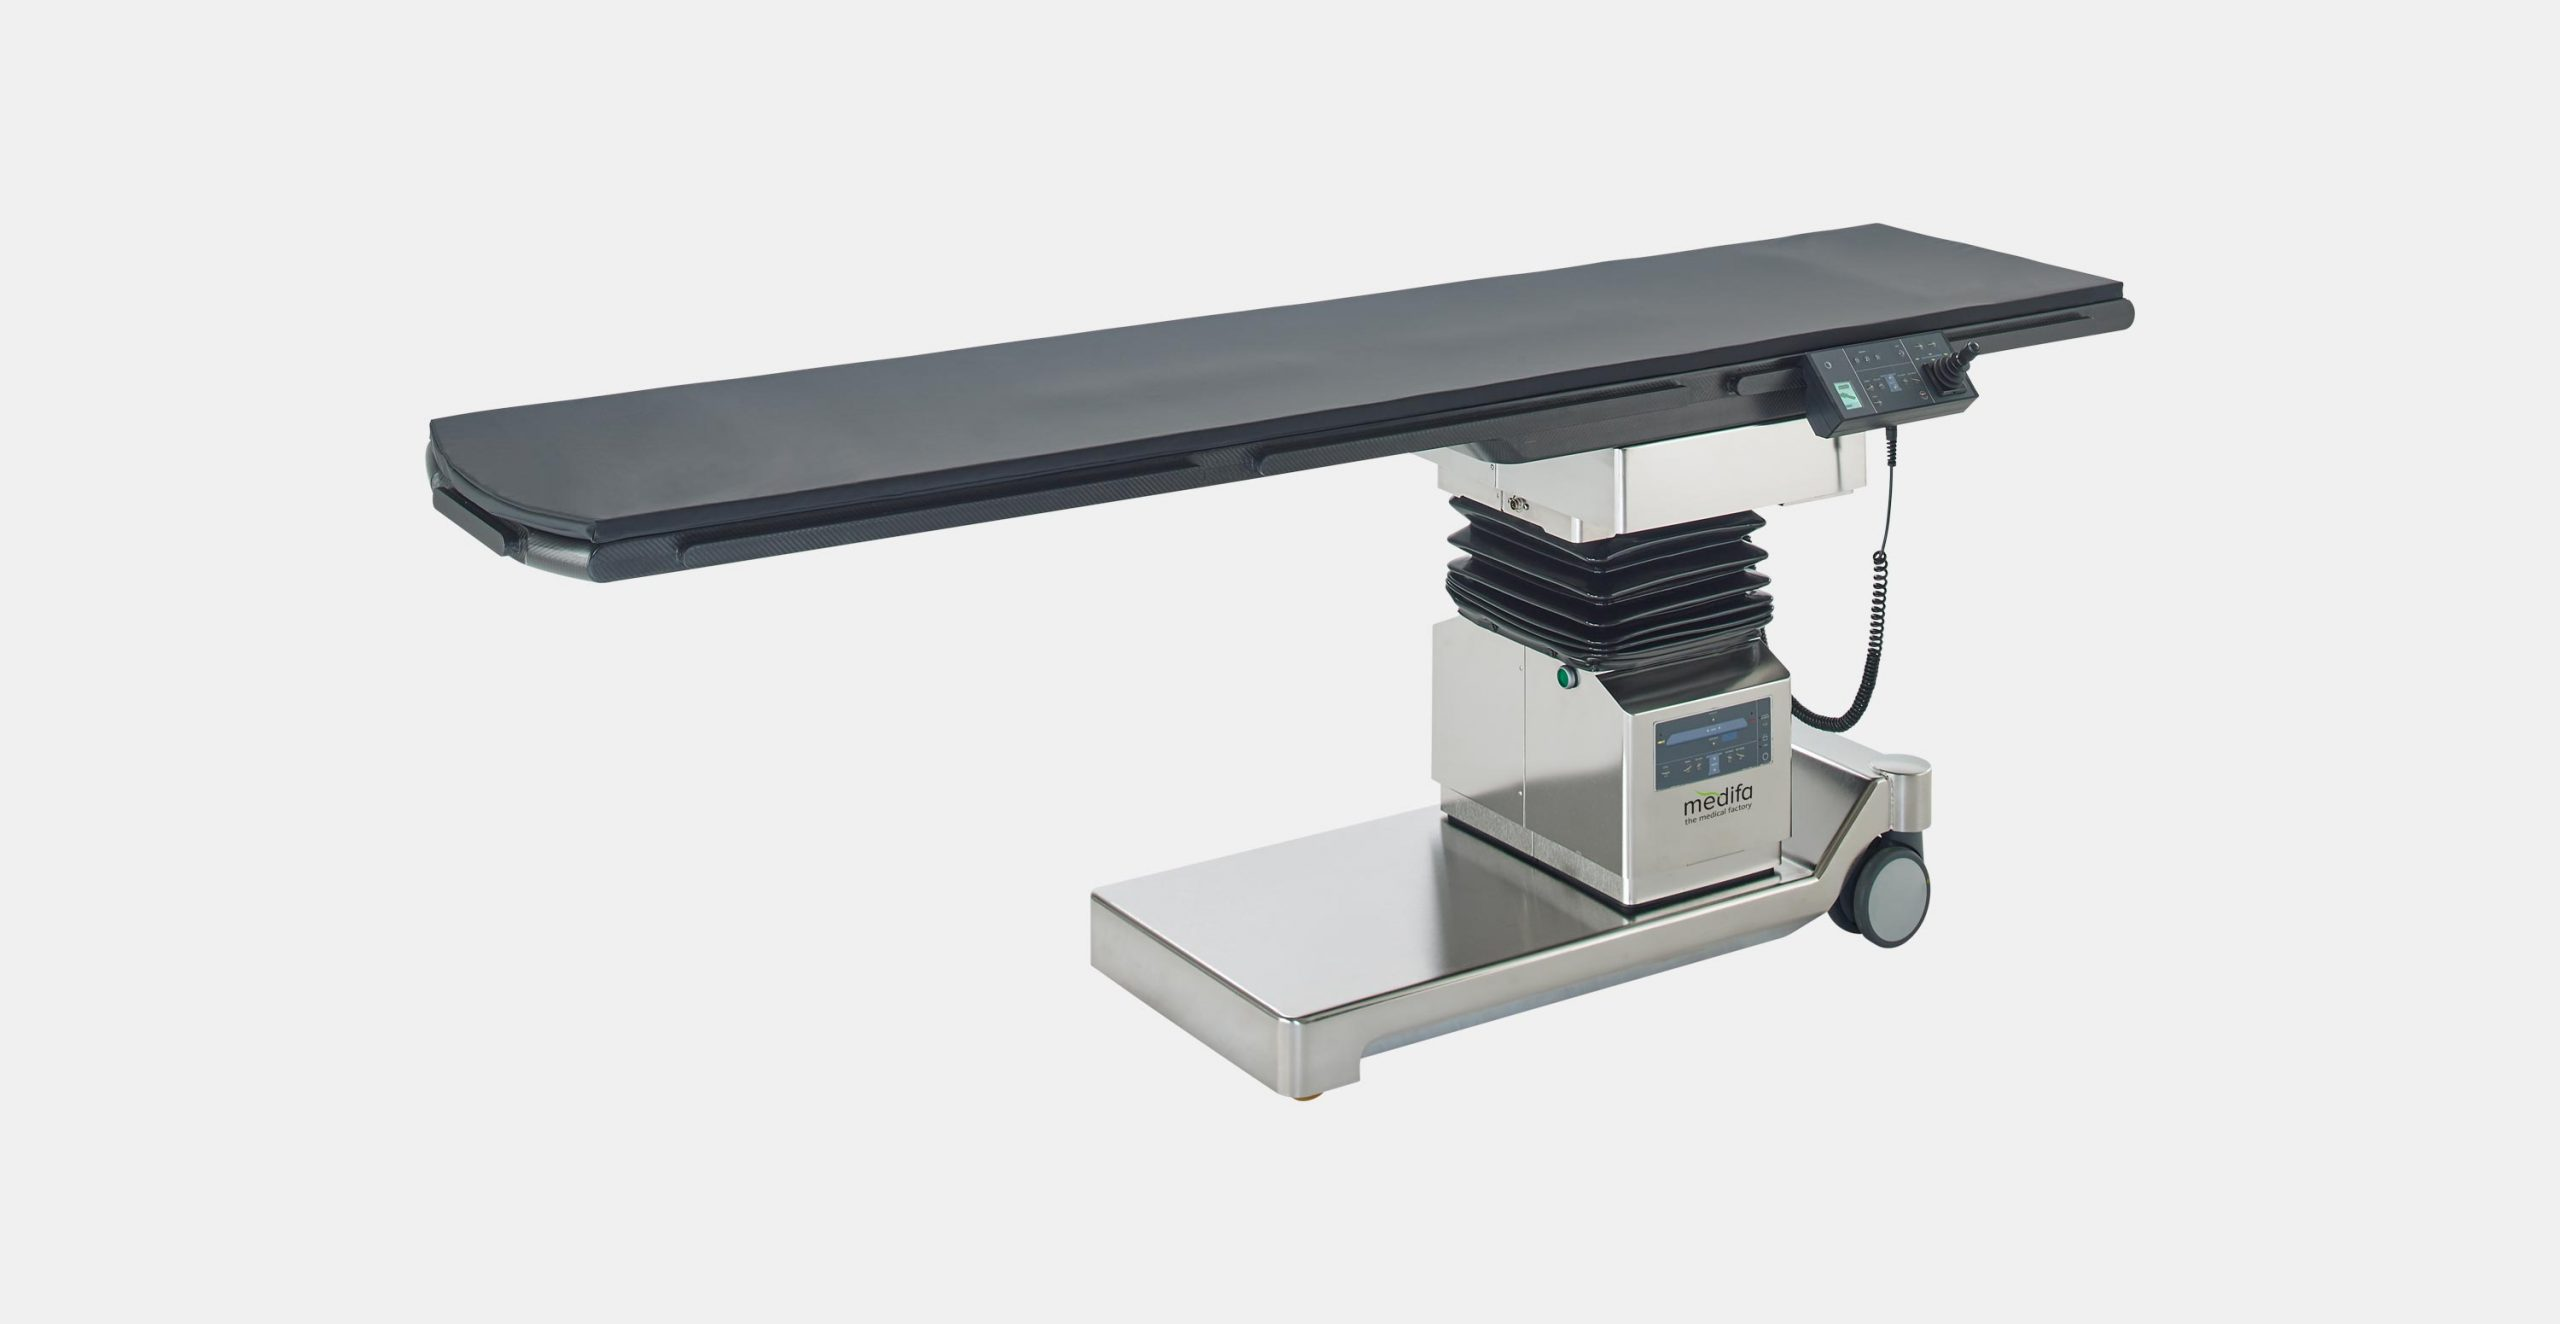 Mobile imaging operating table | medifa 8000